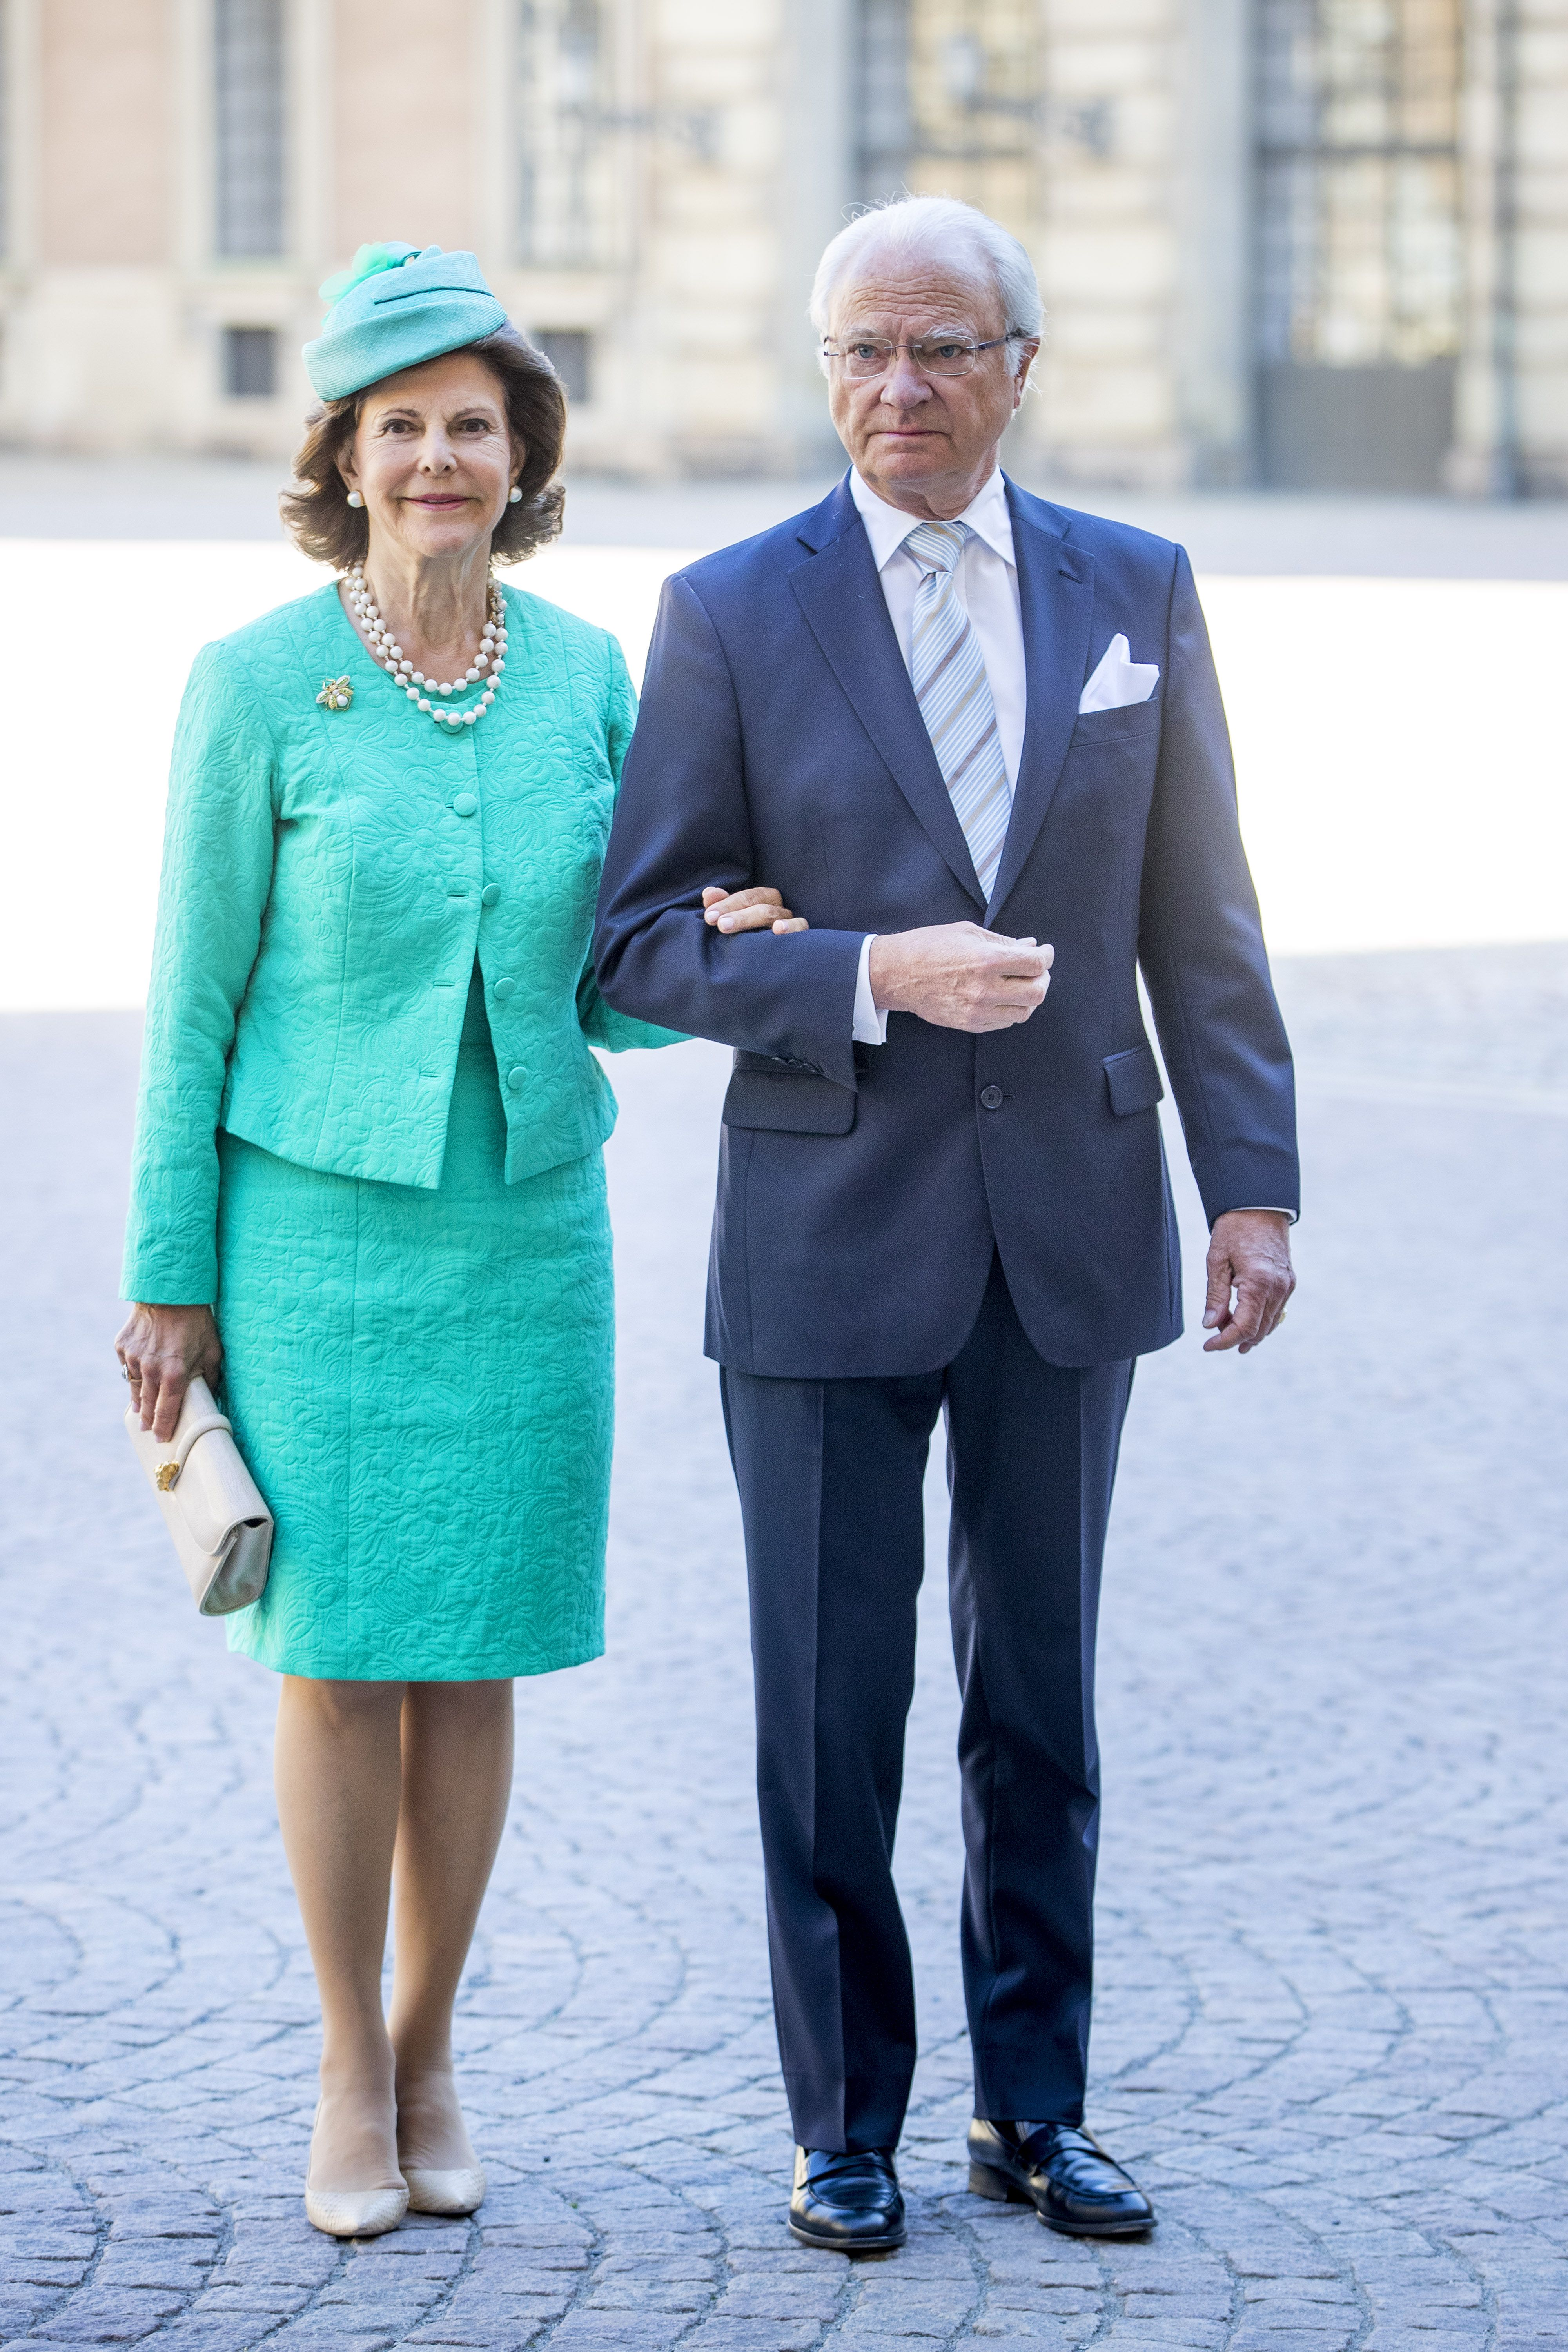 28 Commoners Who Married Royalty - Commoners Who Became Royals